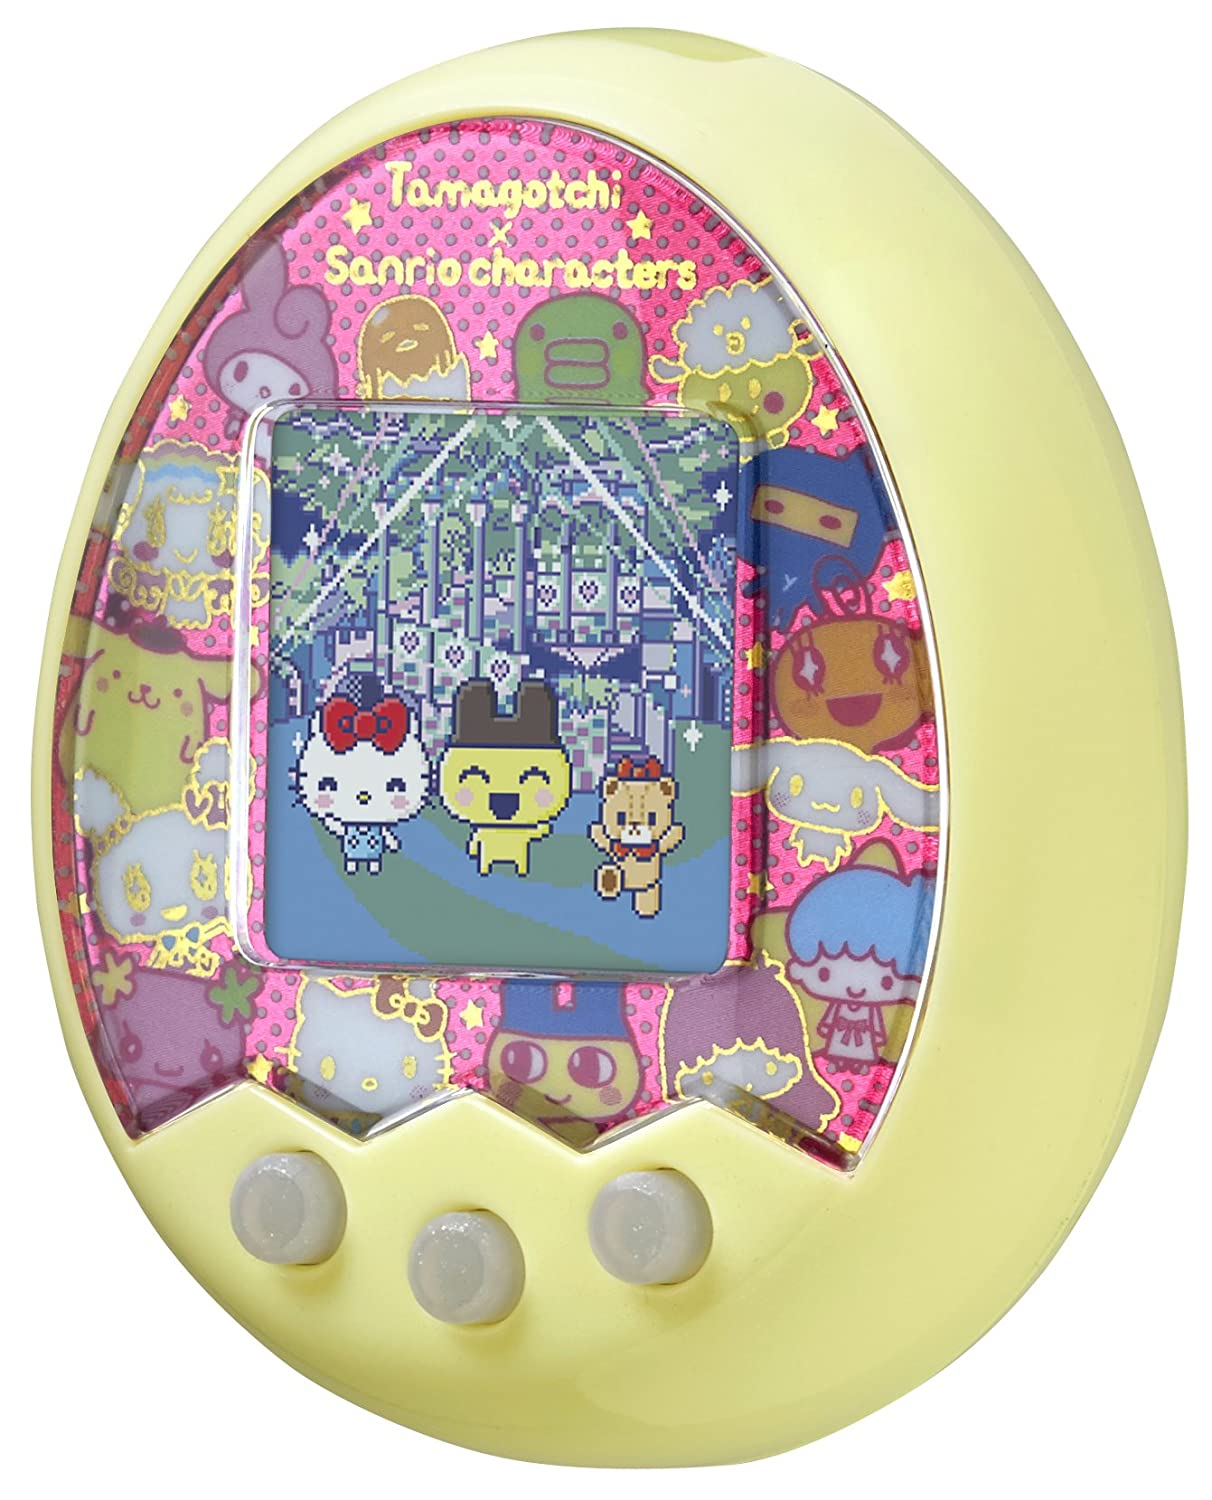 Tamagotchi m!x version